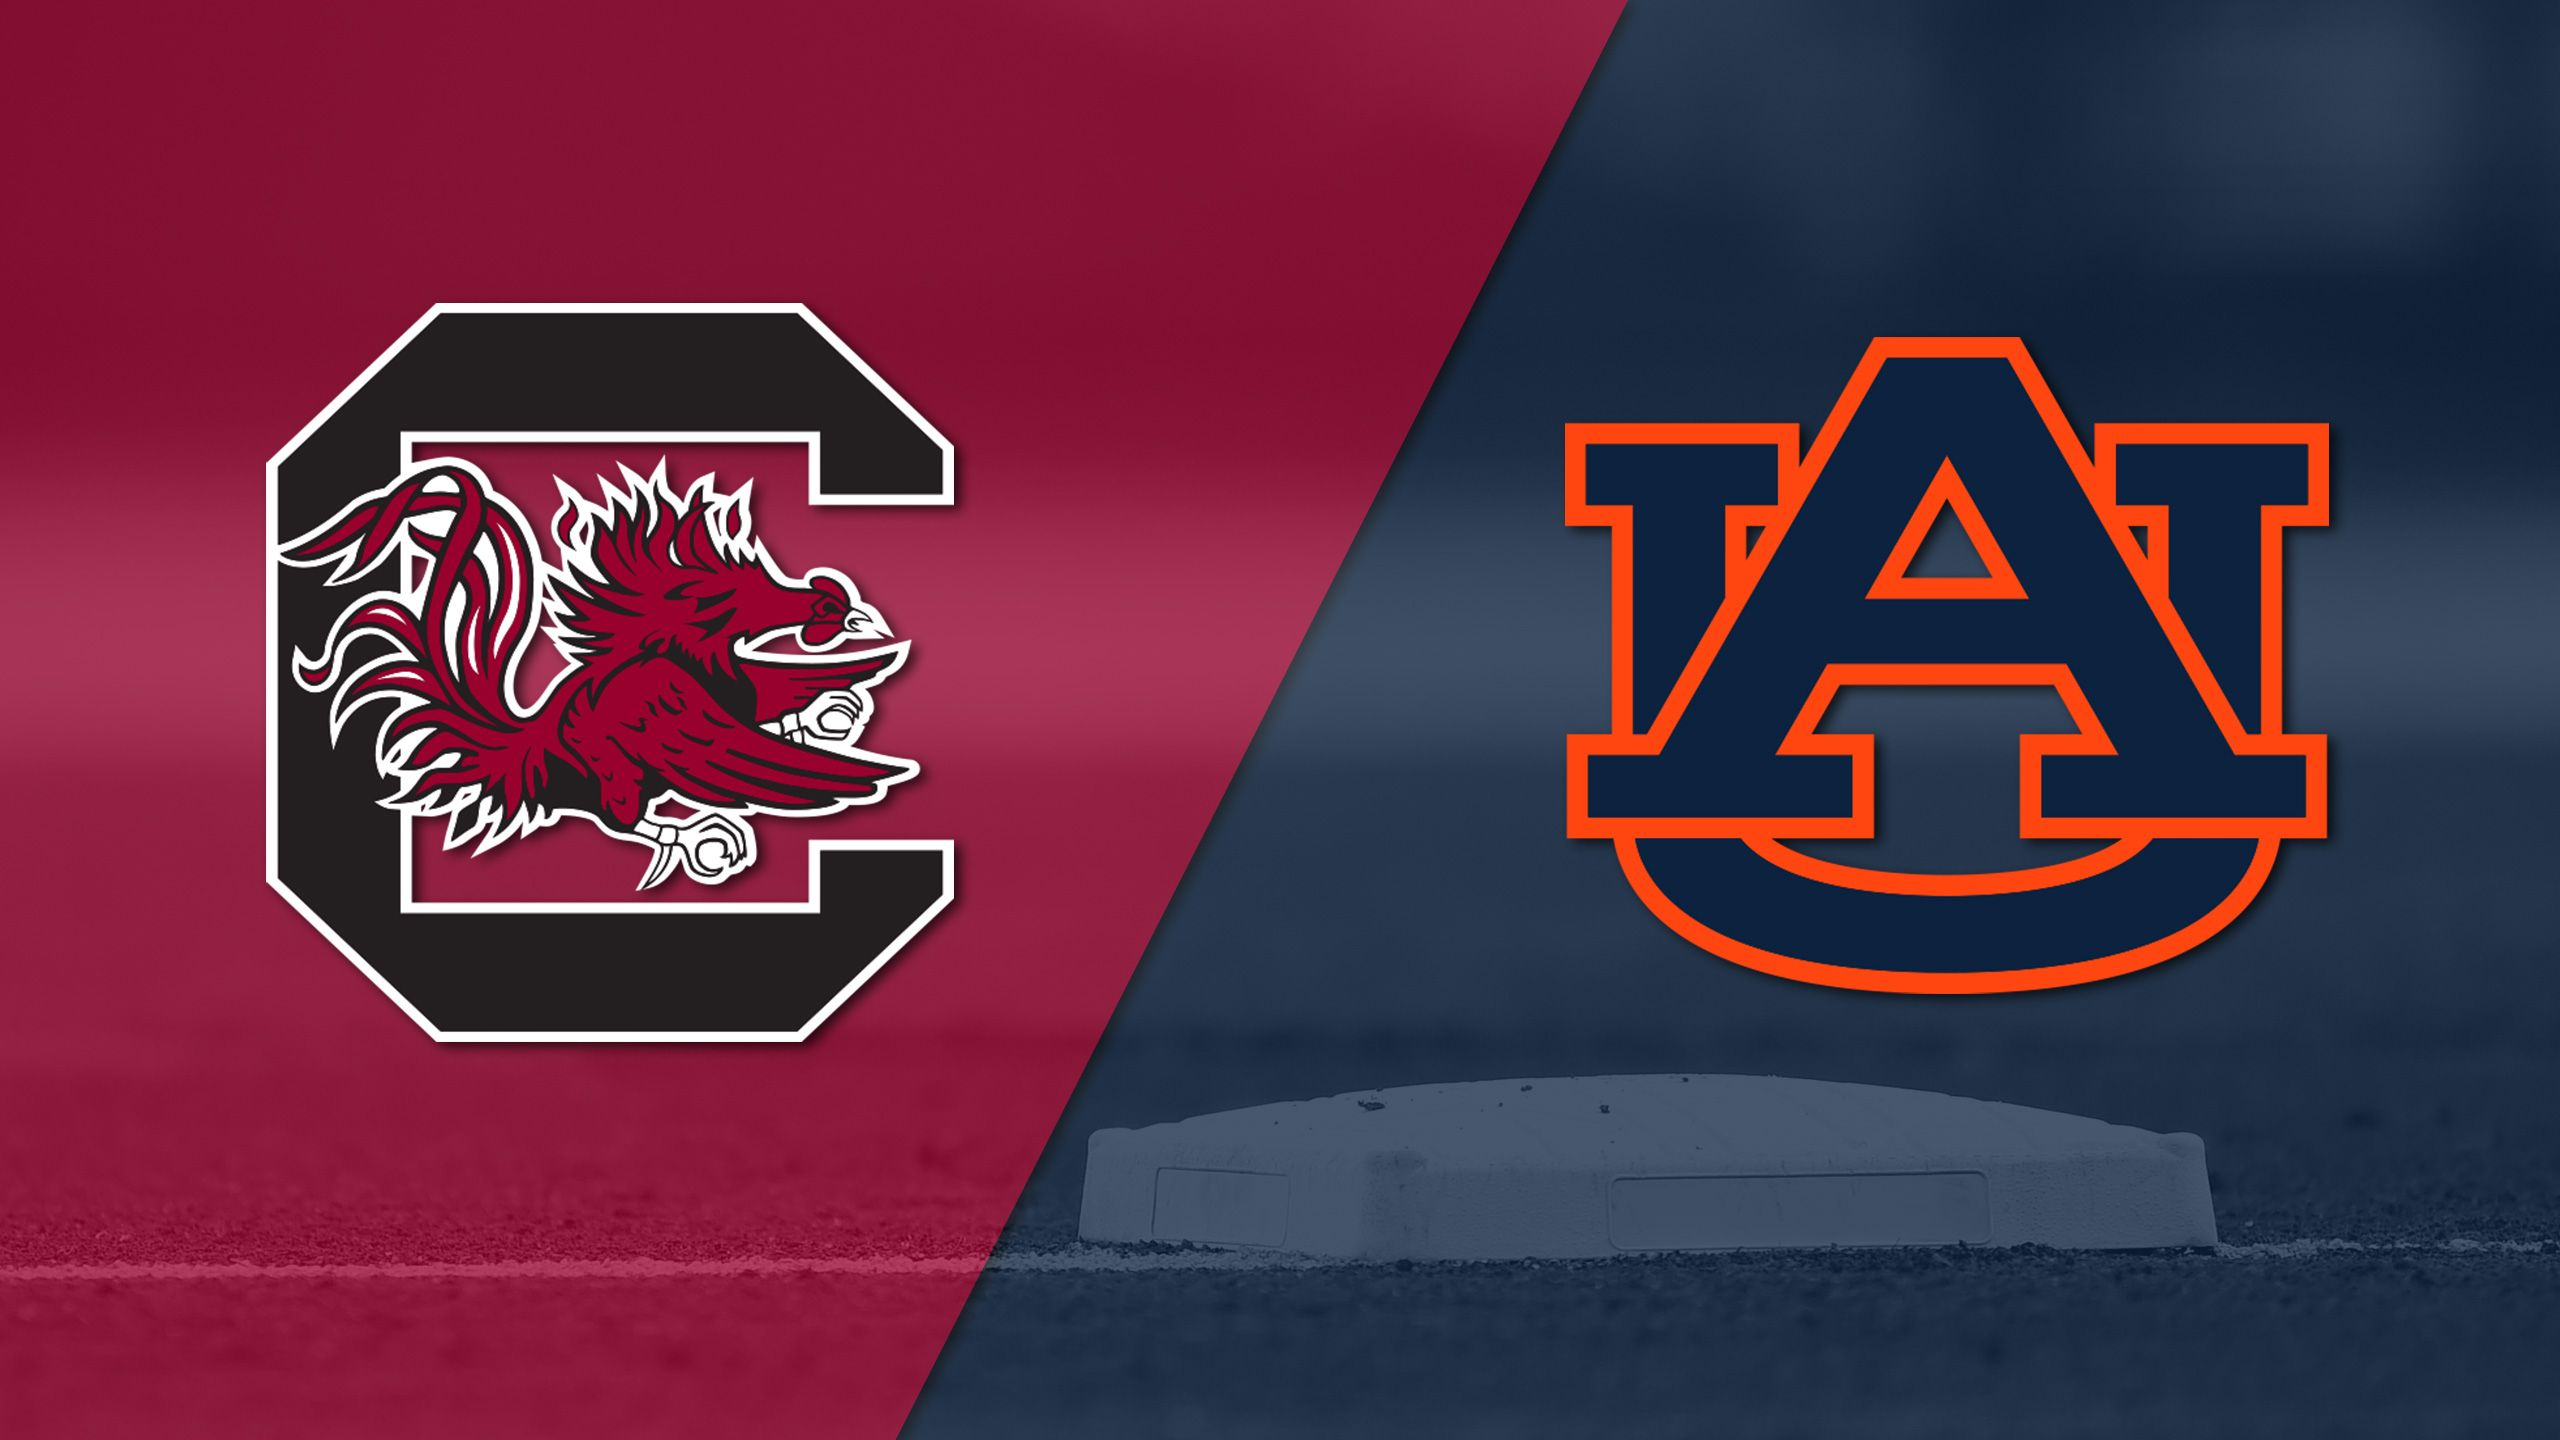 #6 South Carolina vs. #17 Auburn (Baseball)